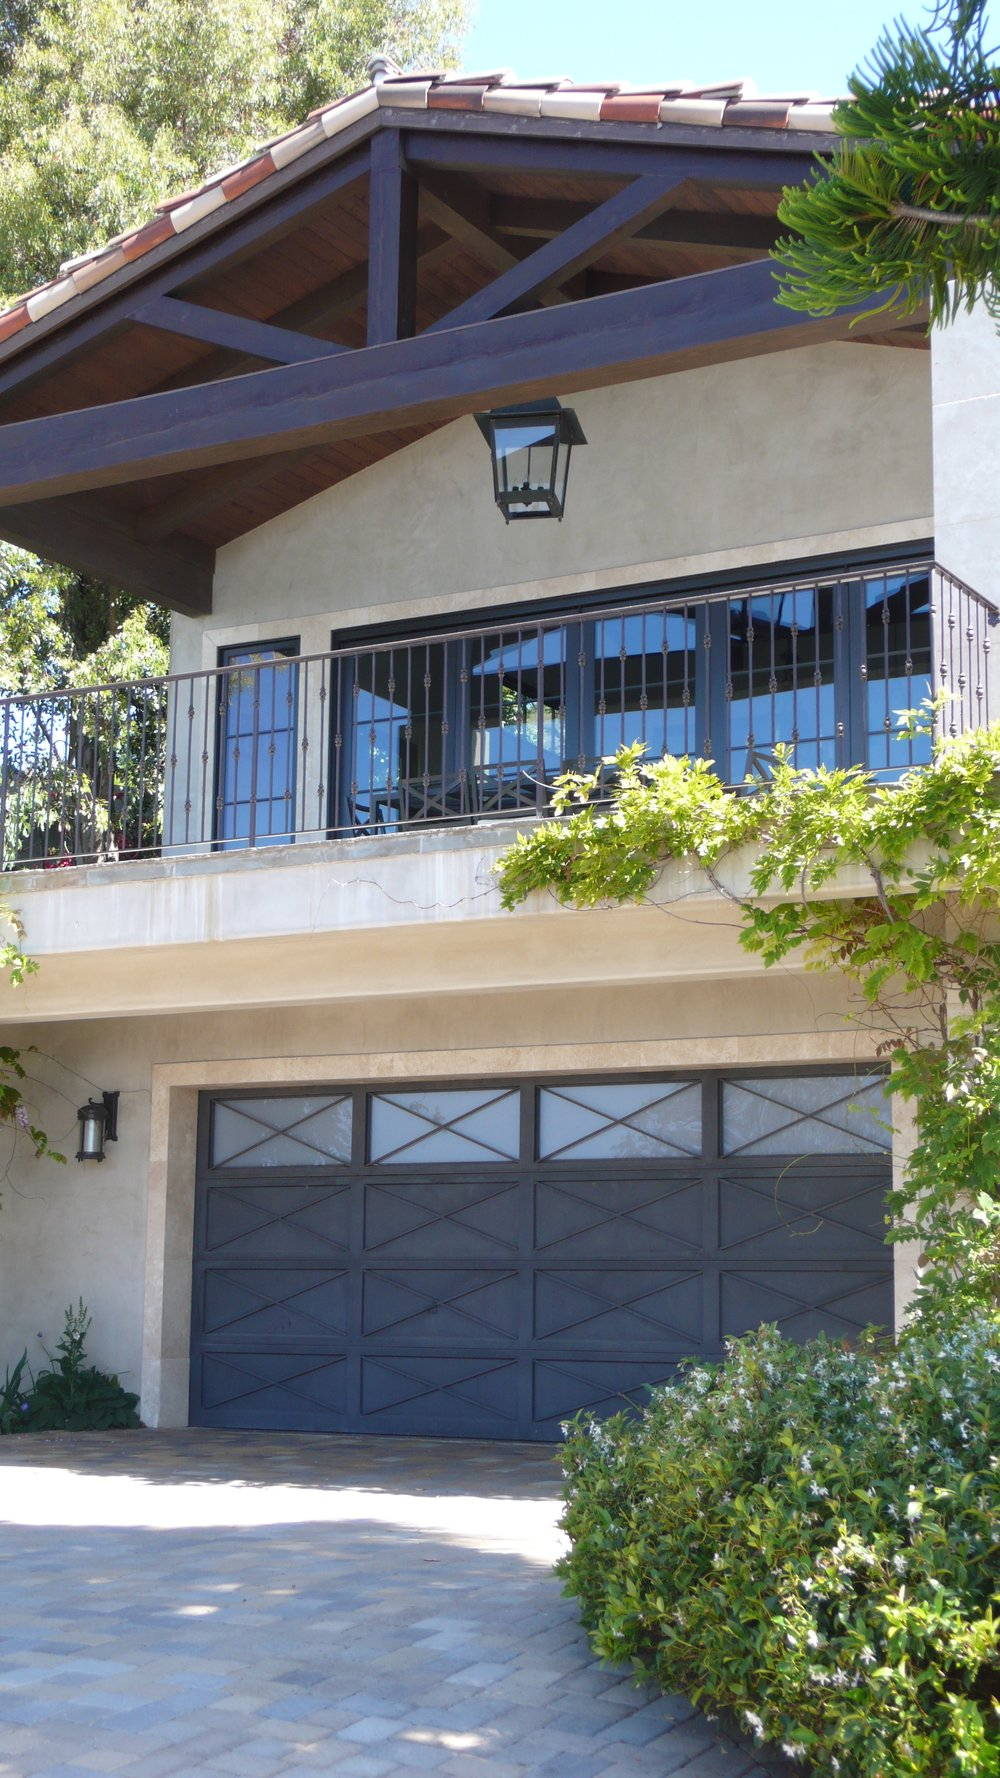 Malibu Garage Door and railing.jpg